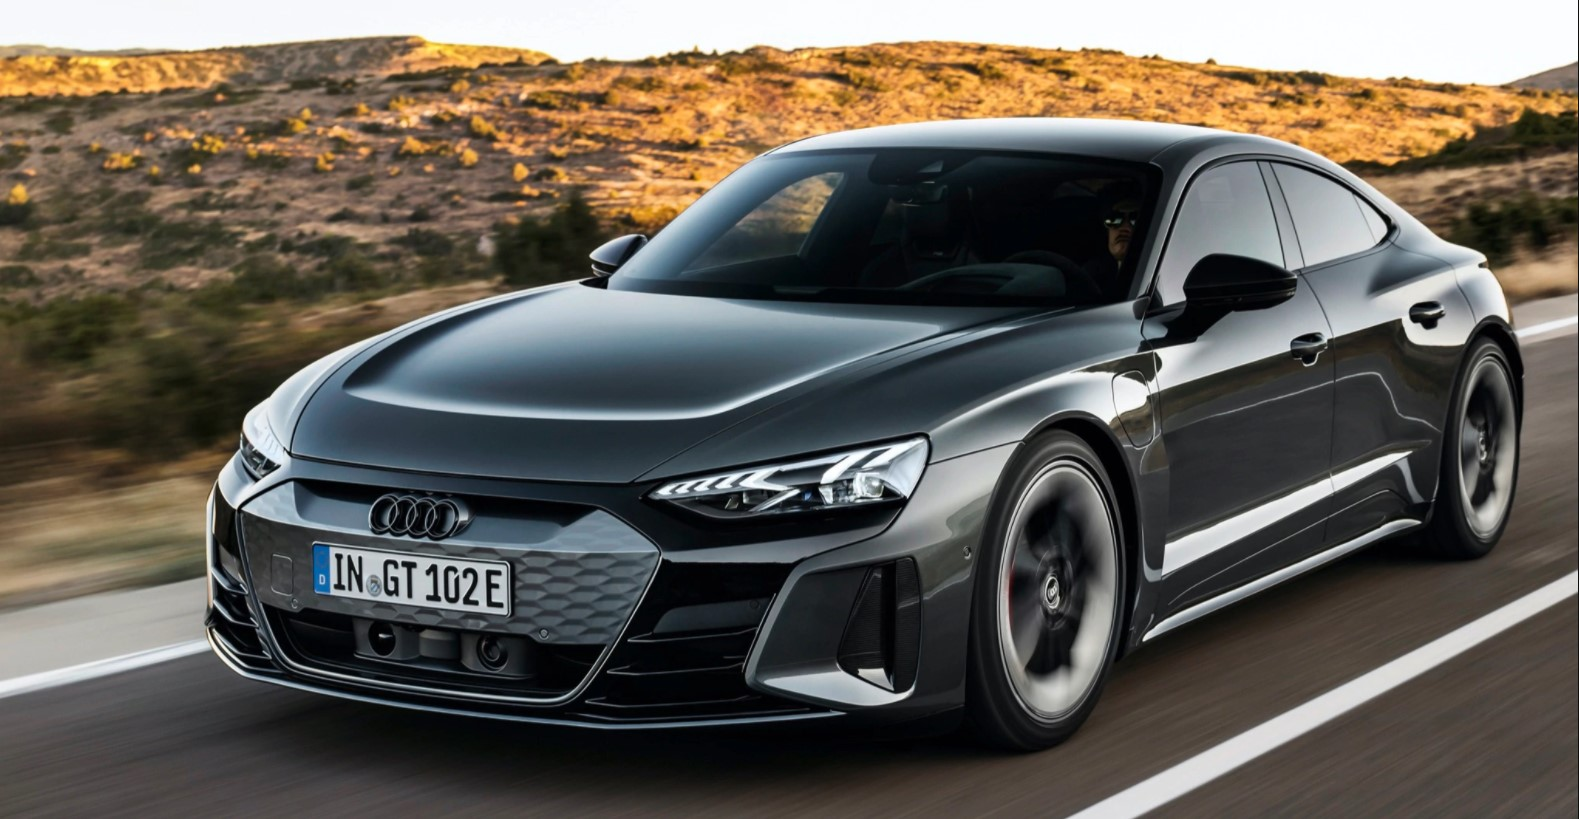 How Much Will The 2022 Audi e-tron GT Cost